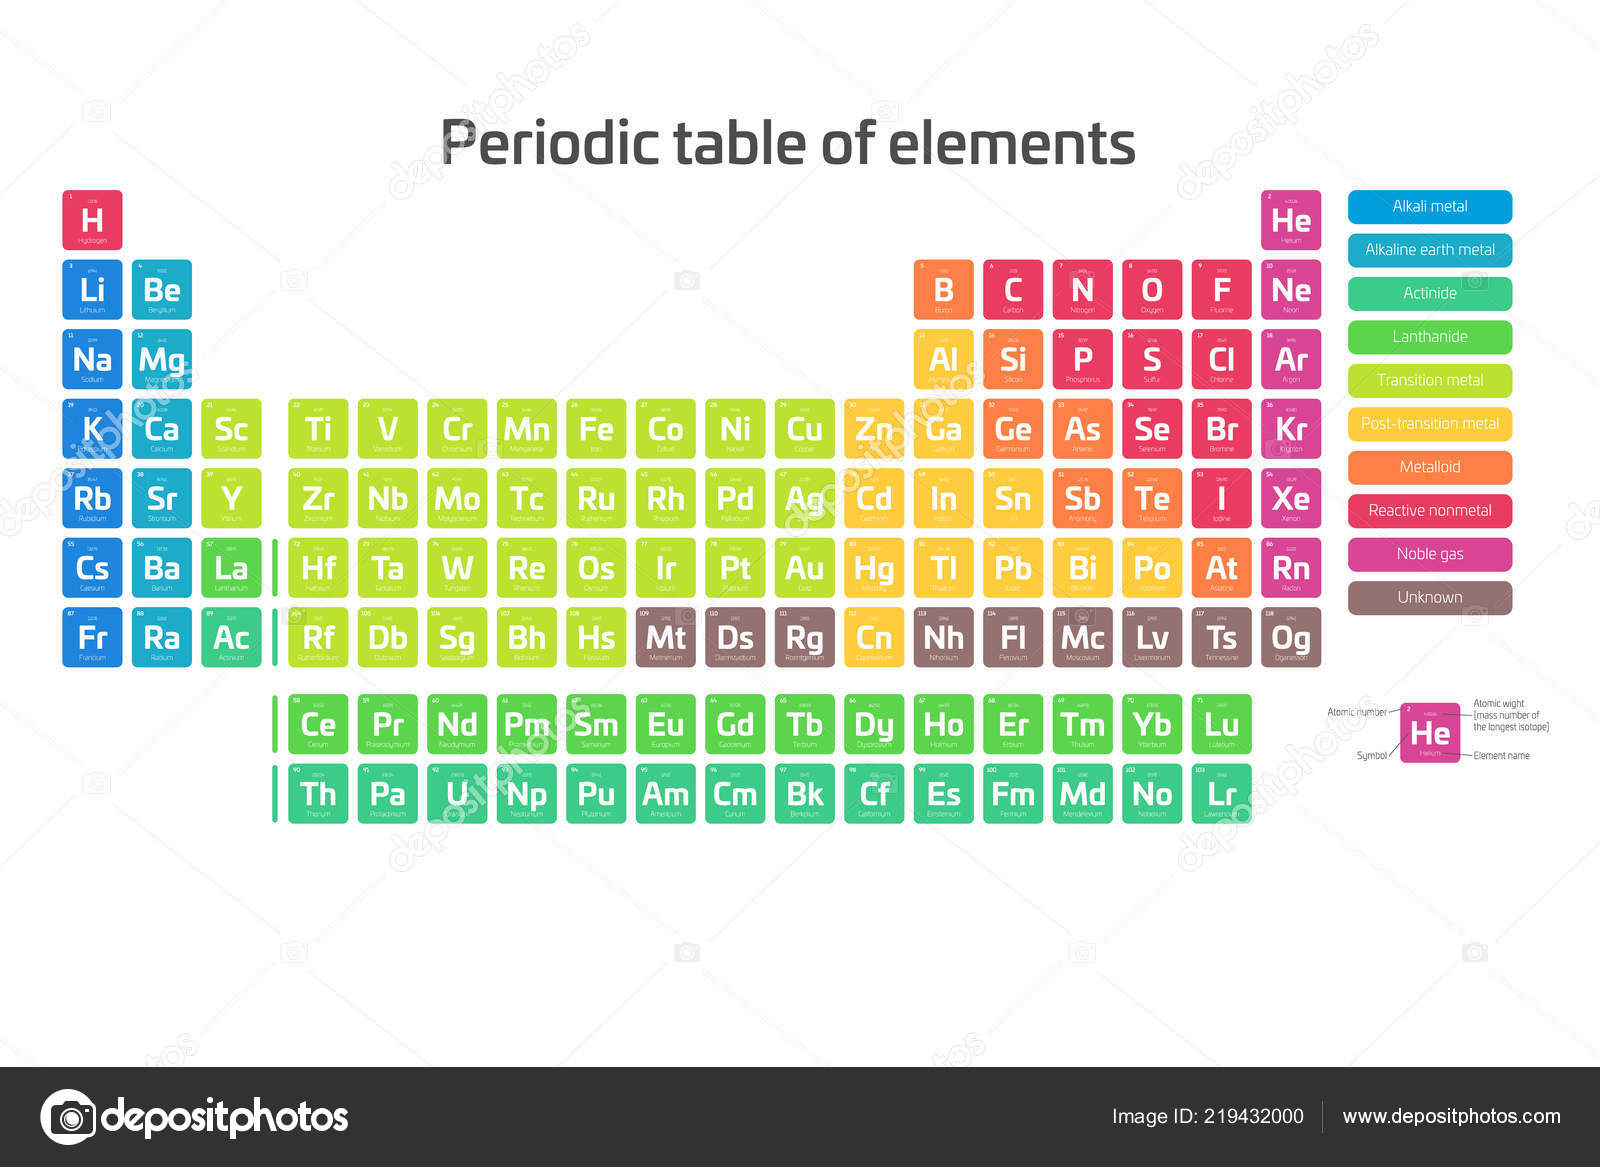 Periodic Table Symbols And Names Crossword Puzzle Answer